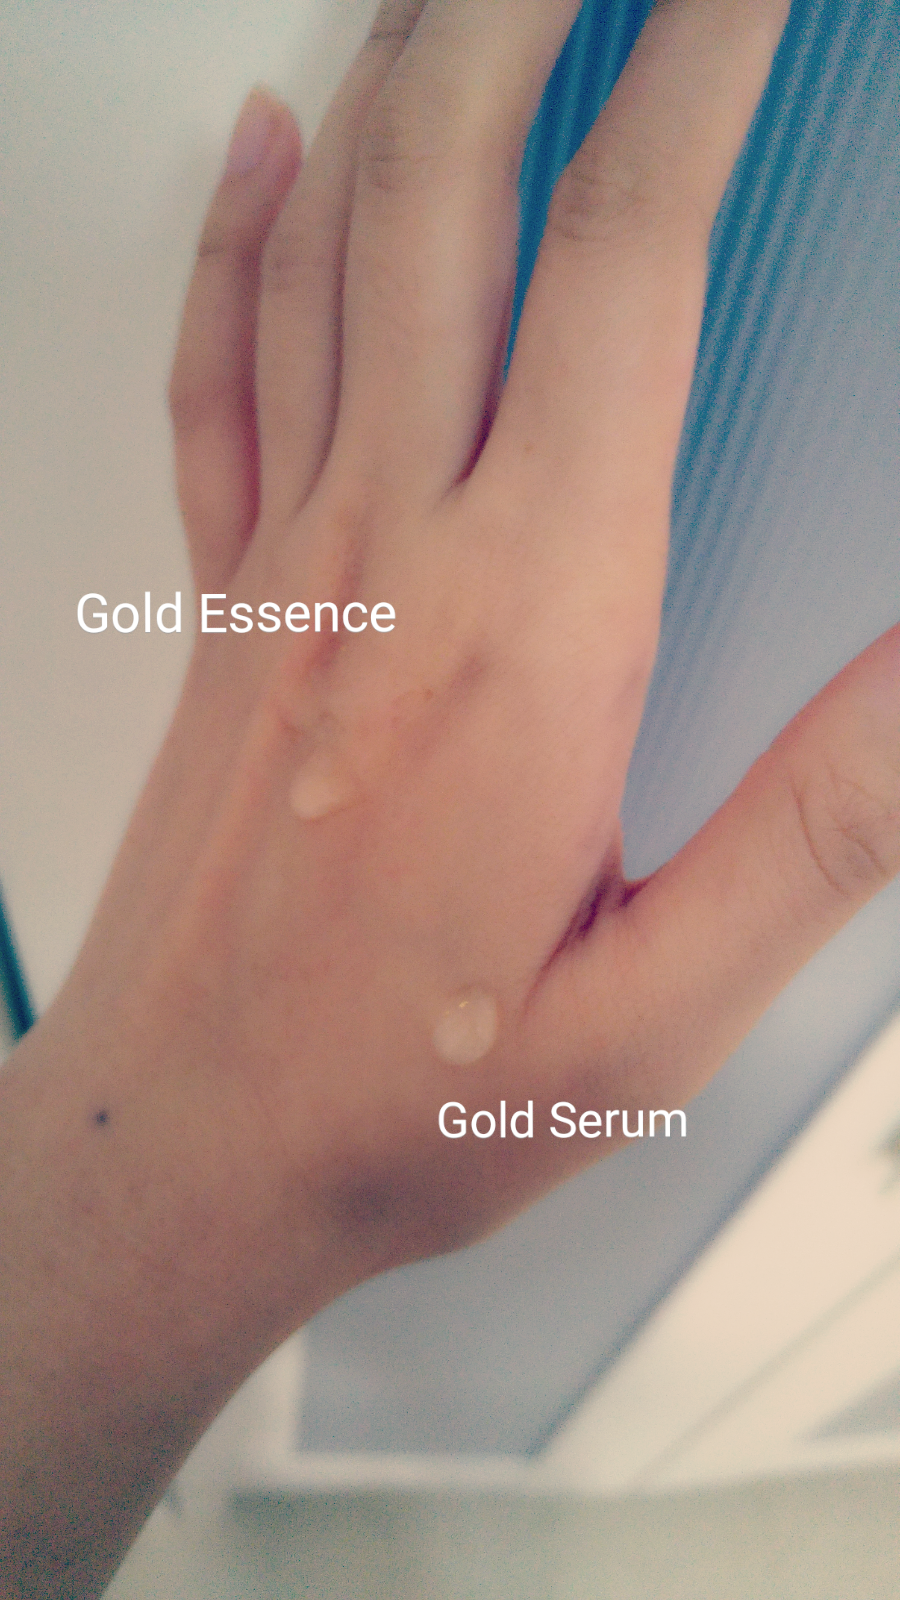 Review Secret Key 24k Gold Premium First Essence Serum Sydsunshine Bioaqua With My Hand Positioned Upwards The Products Have A Thick Texture And Doesnt Drip Much